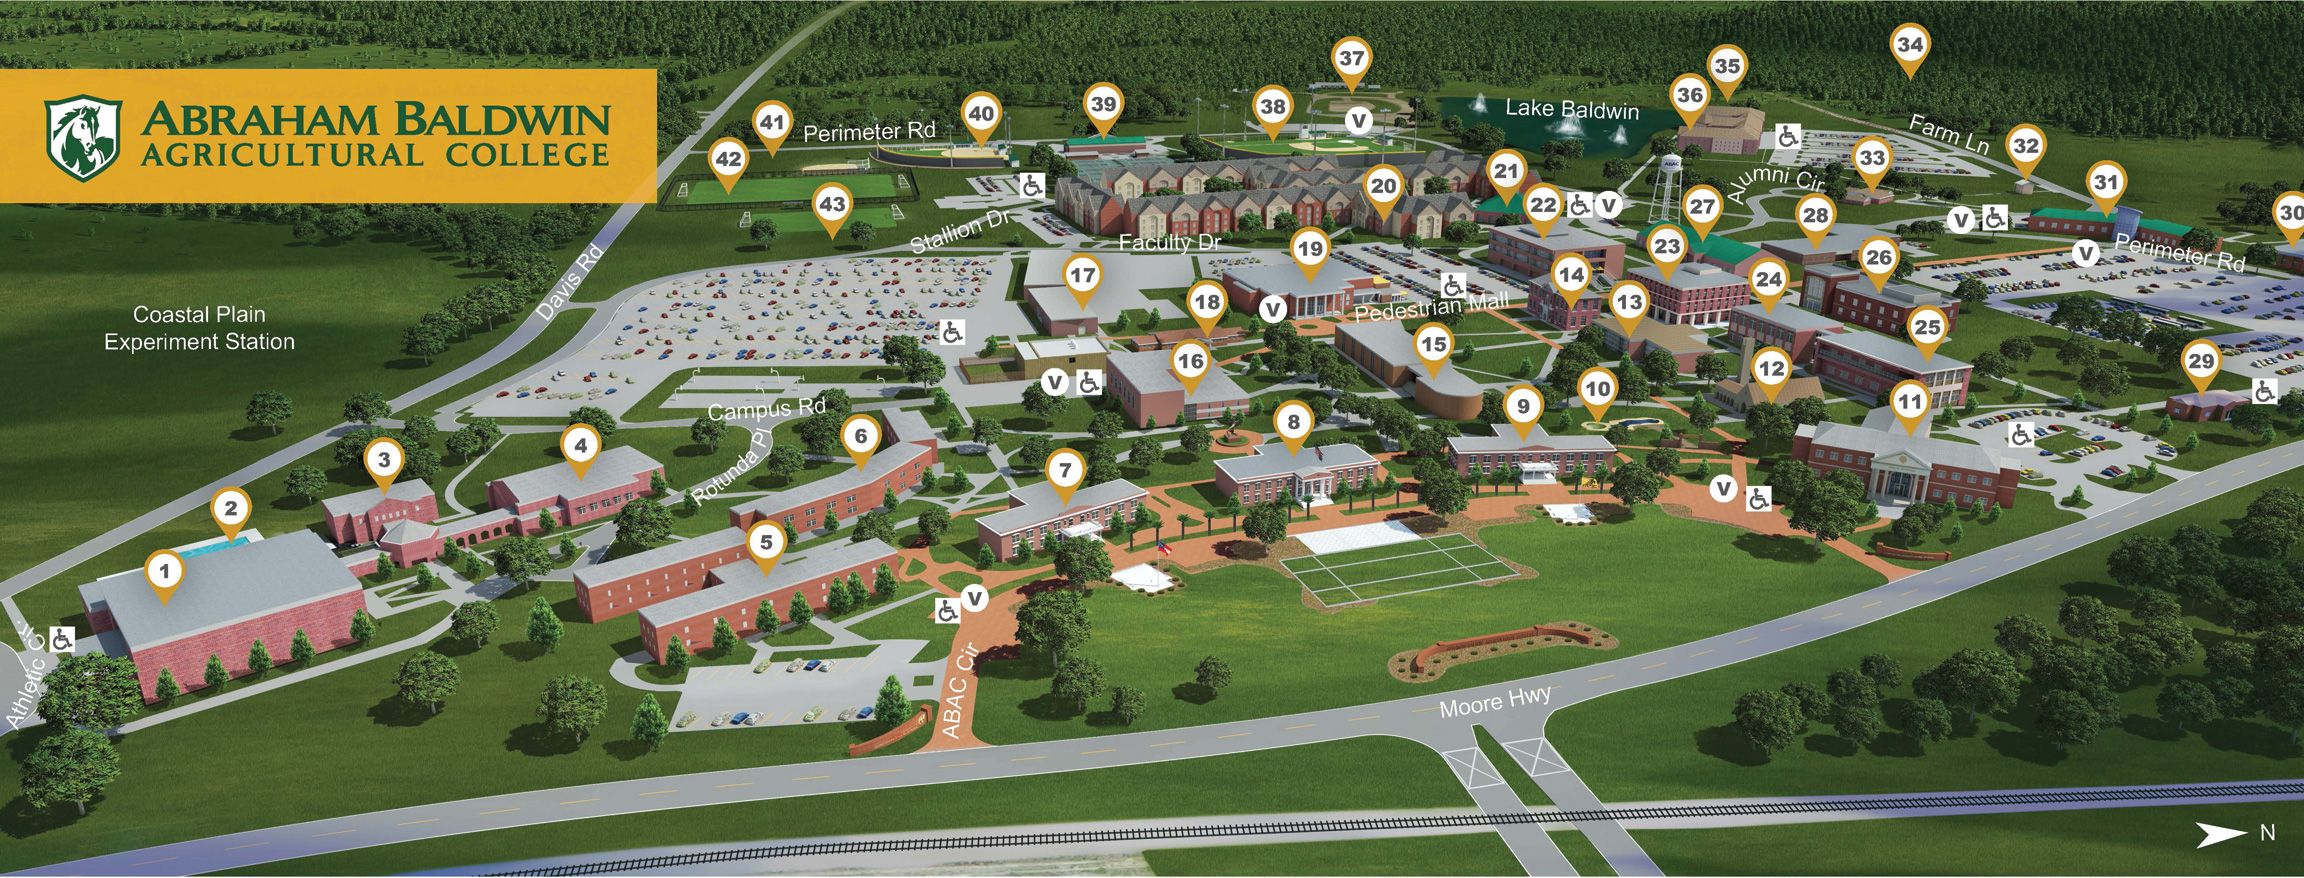 Campus Map Abraham Baldwin Agricultural College LEVI